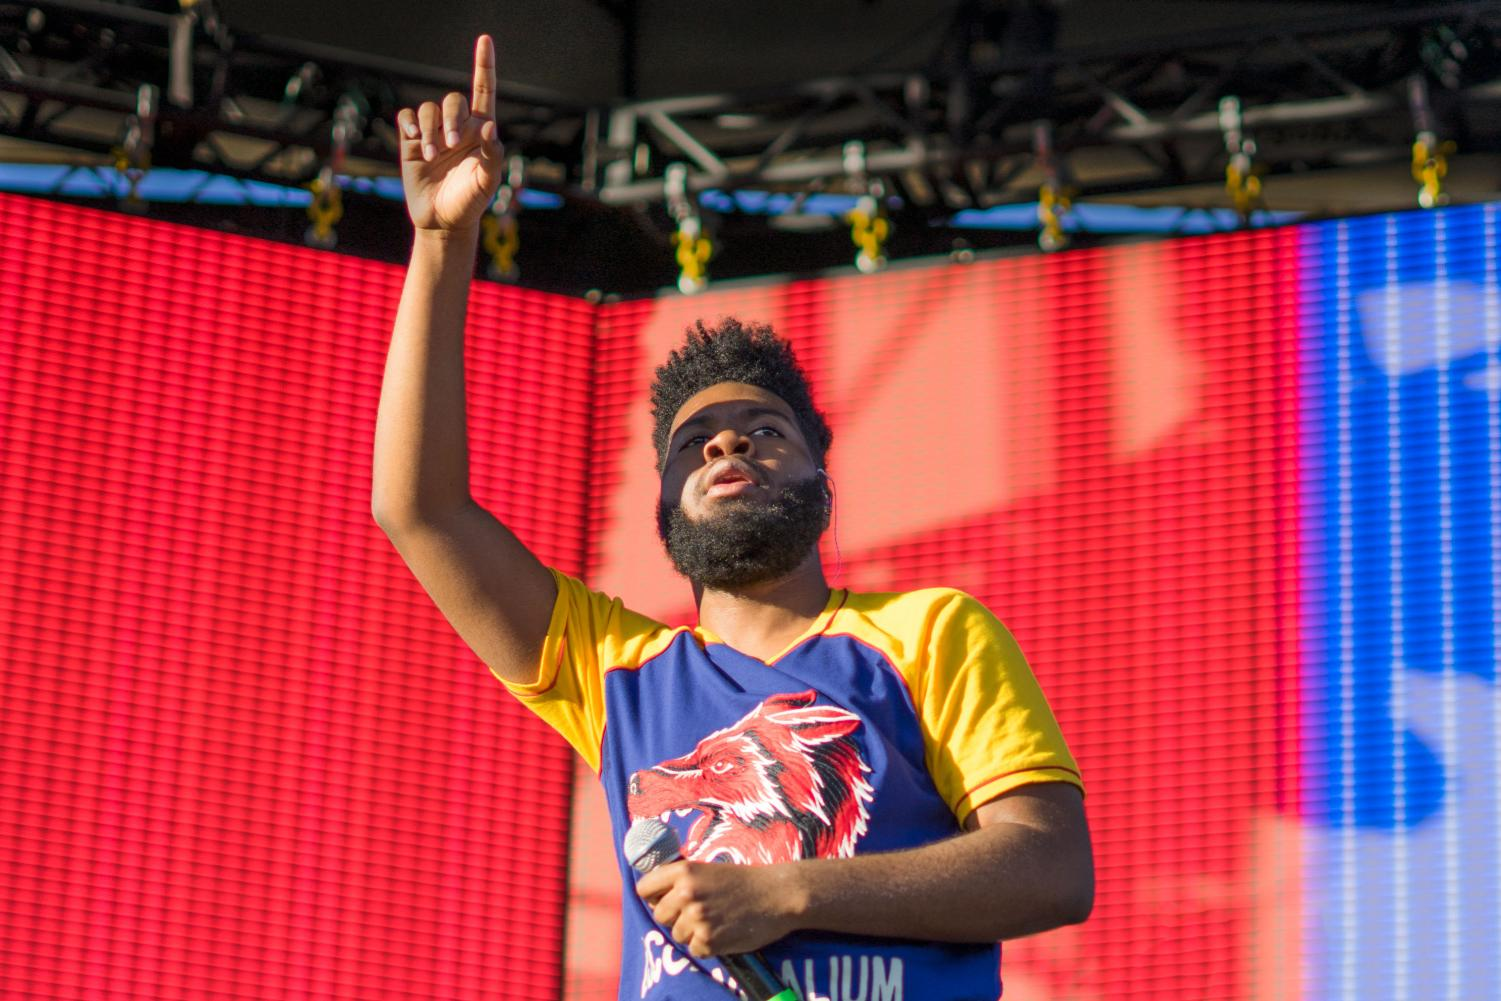 El Paso's Khalid performed on day two at Mala Luna festival.